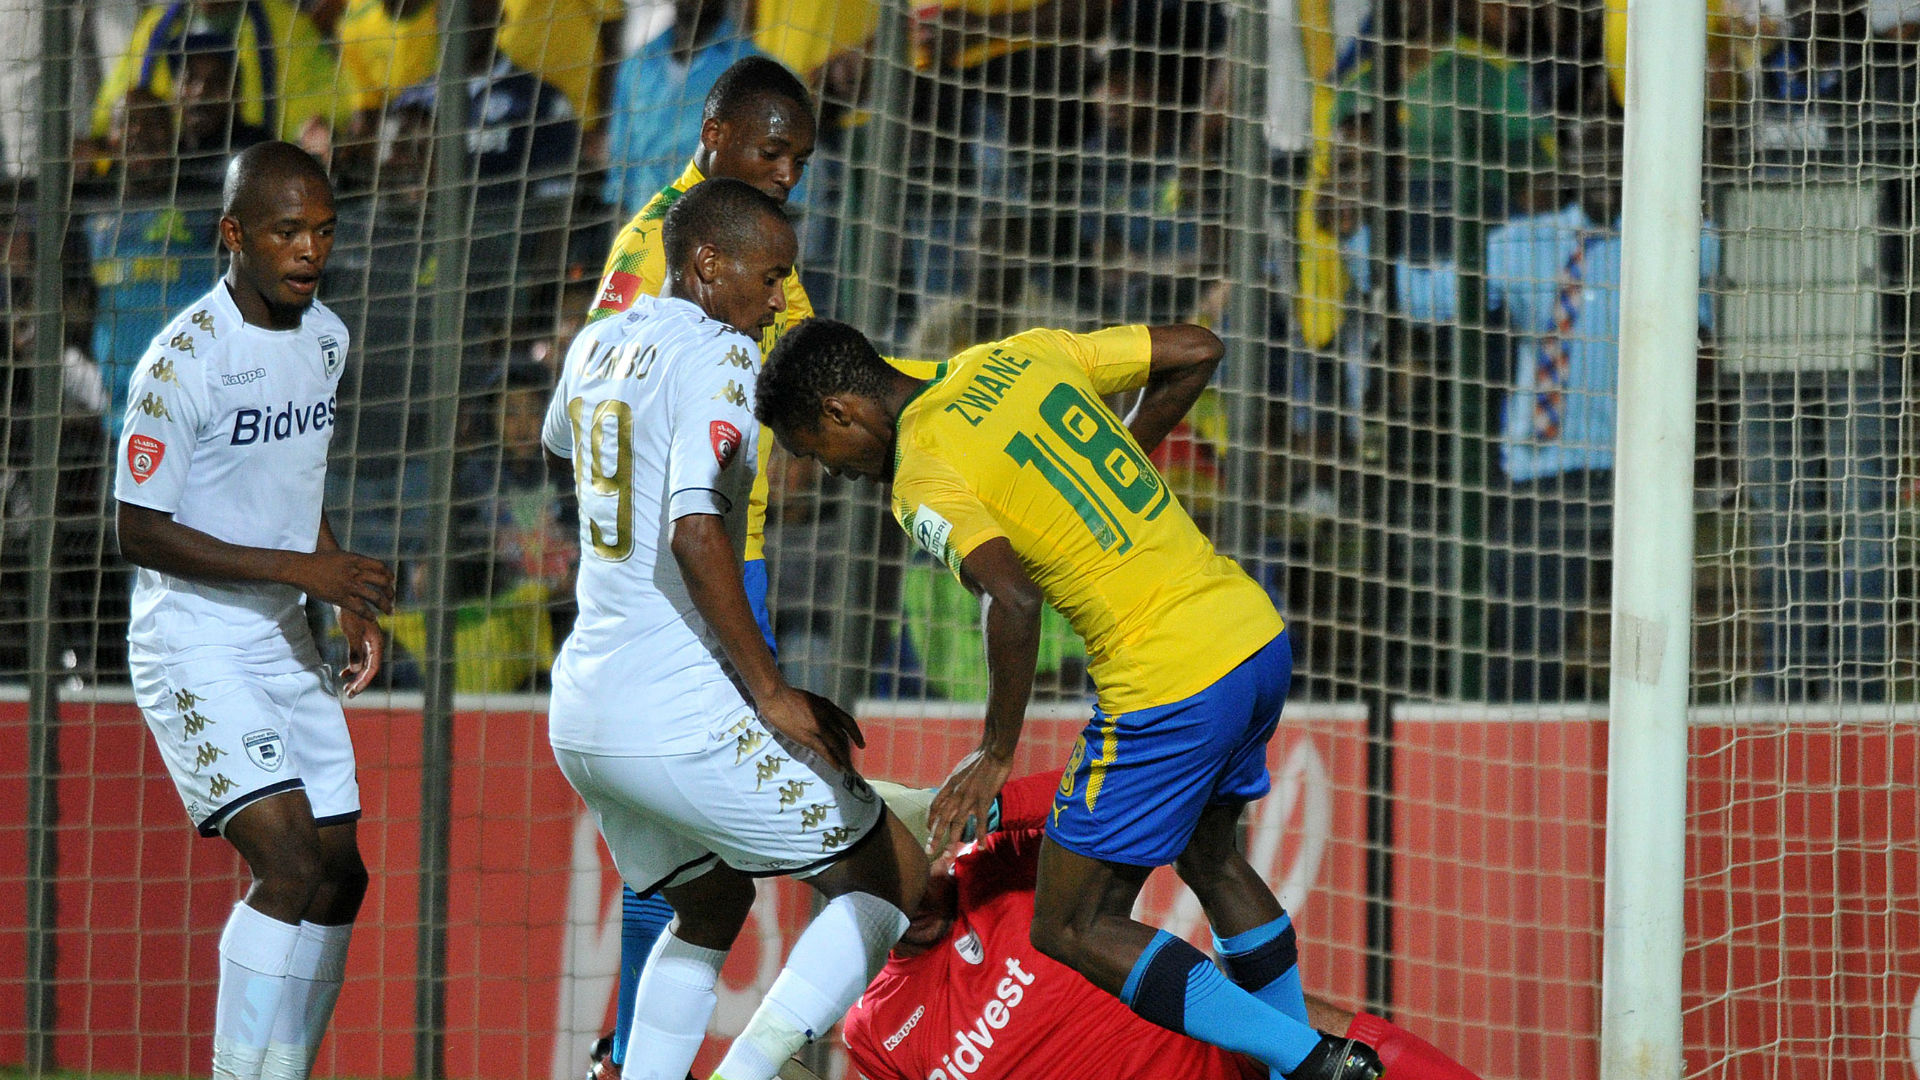 Themba Zwane of Sundowns against Bidvest Wits